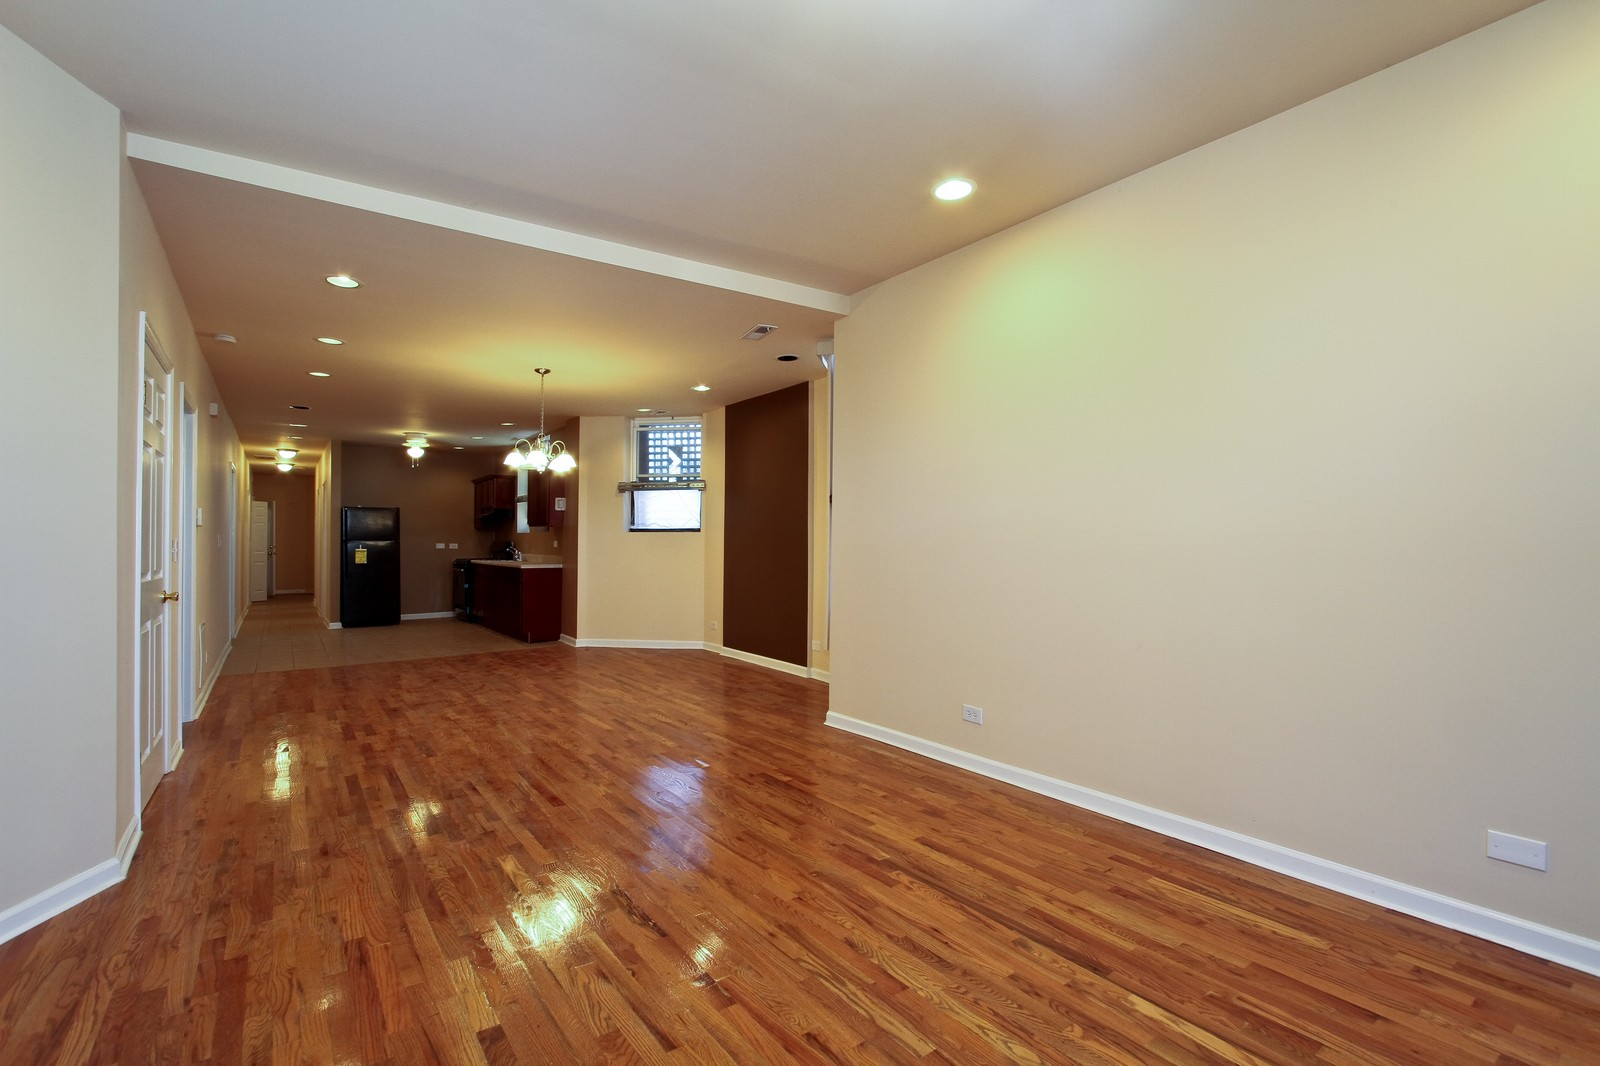 Real Estate Photography - 449 W 61st St, Chicago, IL, 60621 - Living Room